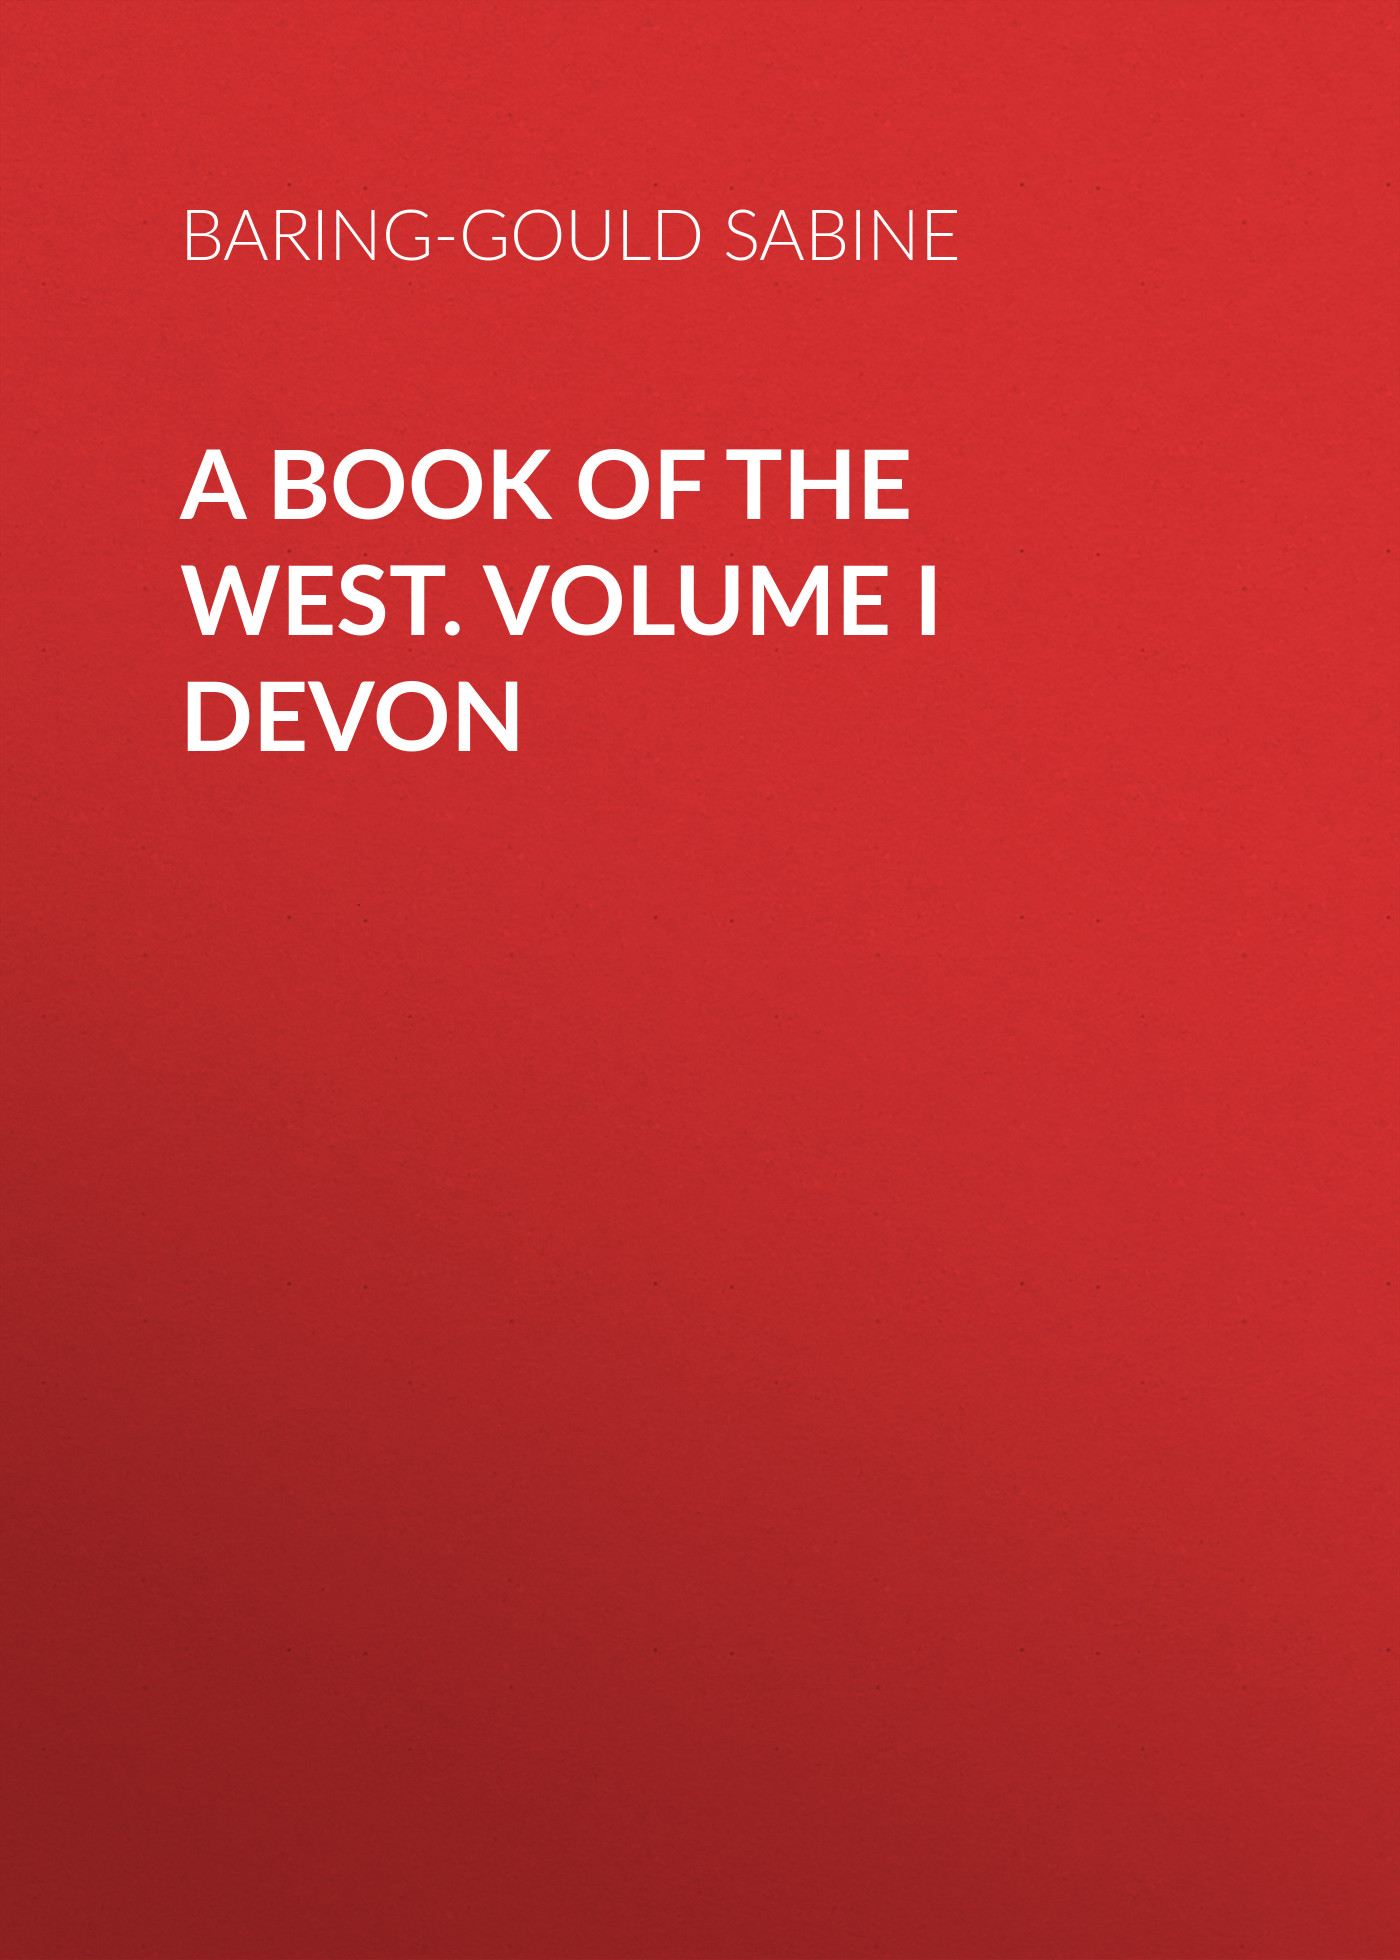 Baring-Gould Sabine A Book of the West. Volume I Devon baring gould sabine a book of north wales